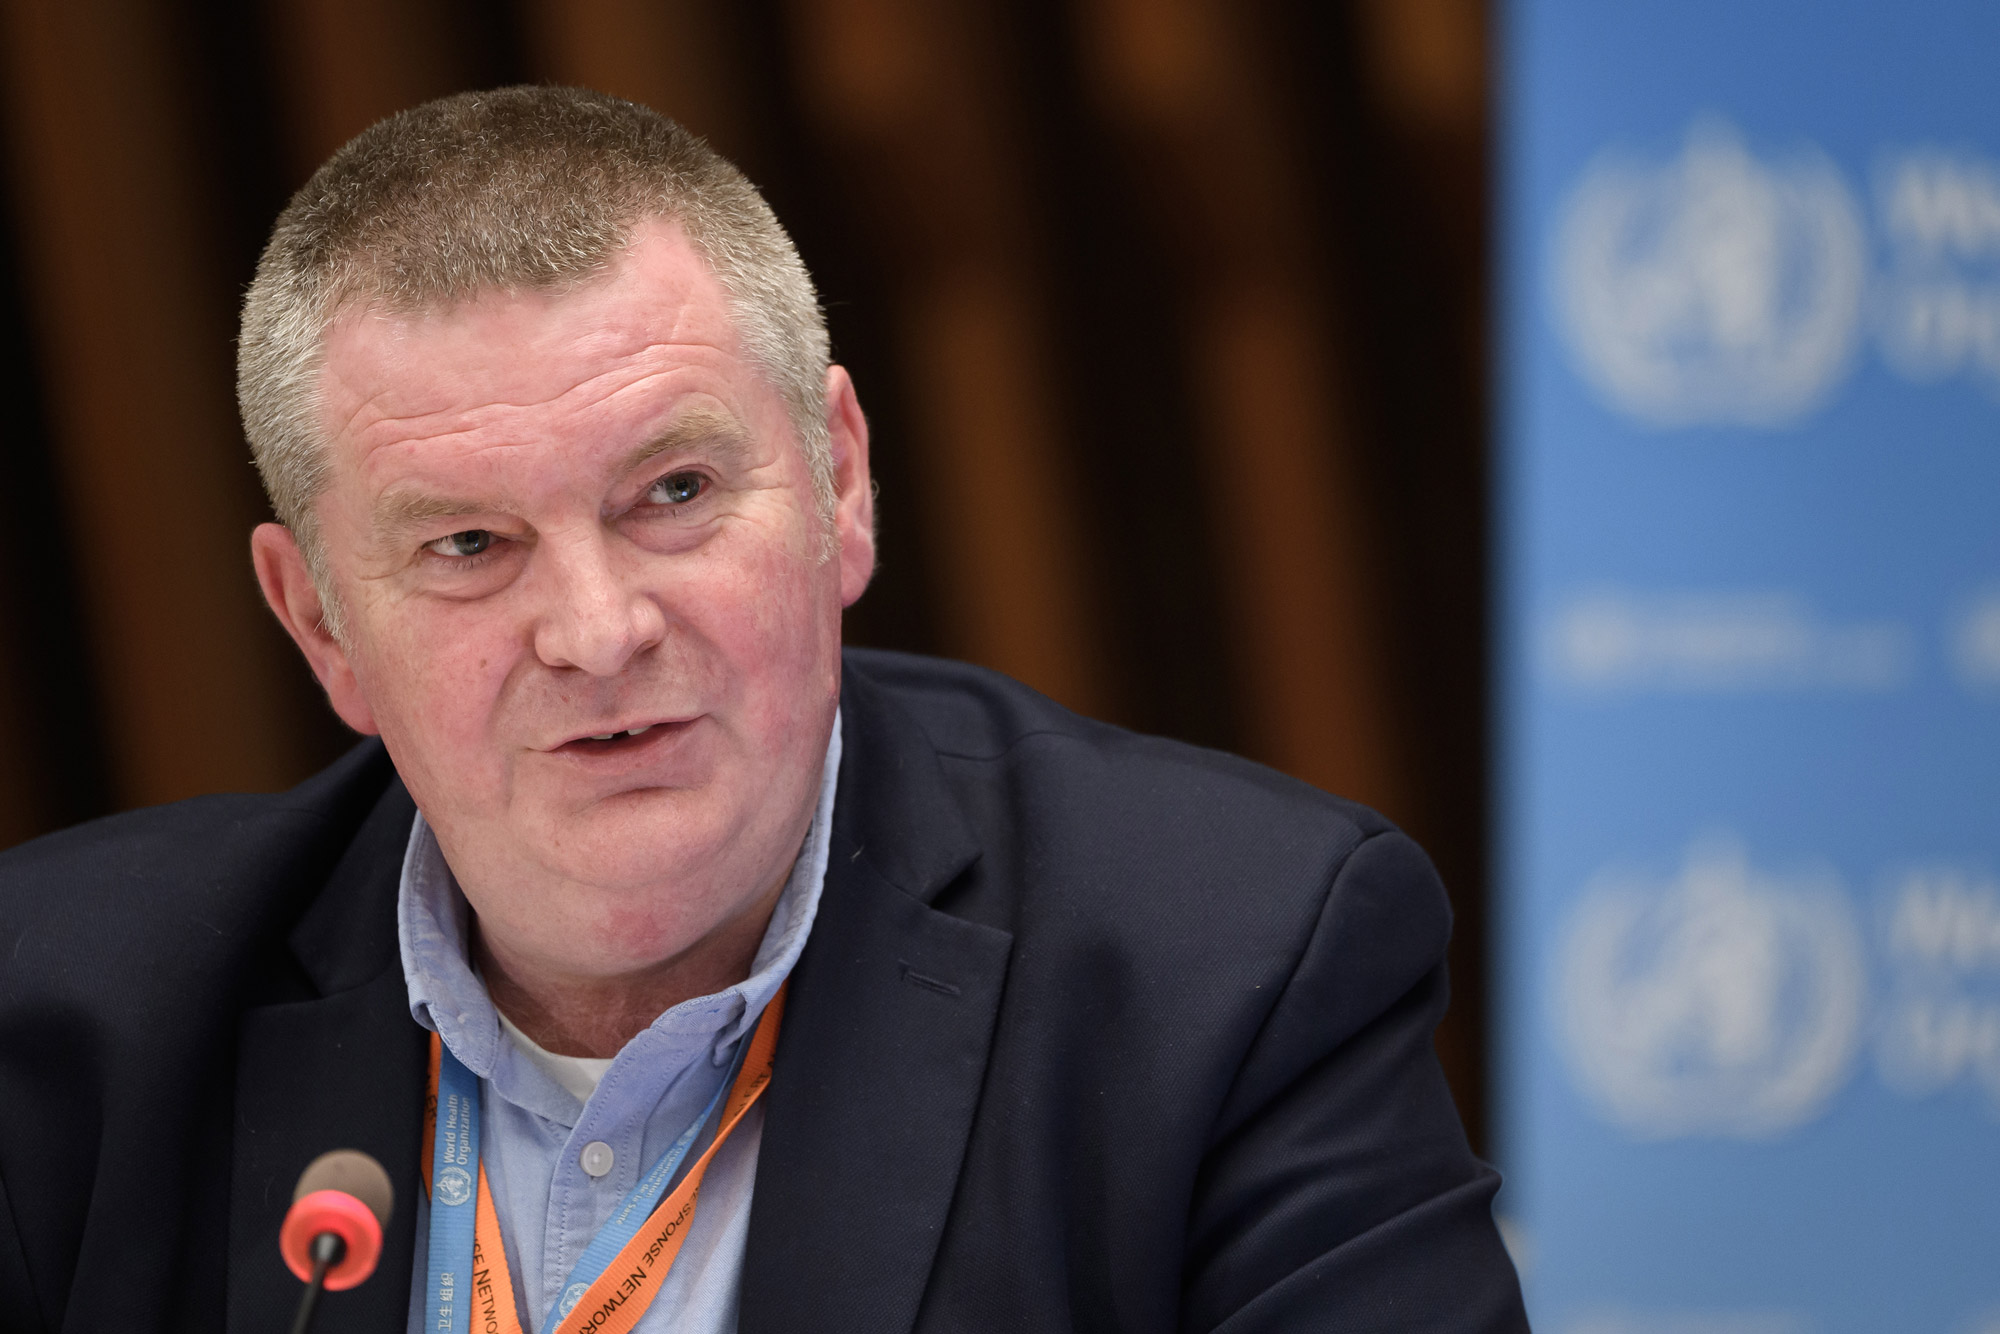 WHO Health Emergencies Programme head Michael Ryan speaks during a press conference on July 3 at the WHO headquarters in Geneva, Switzerland.